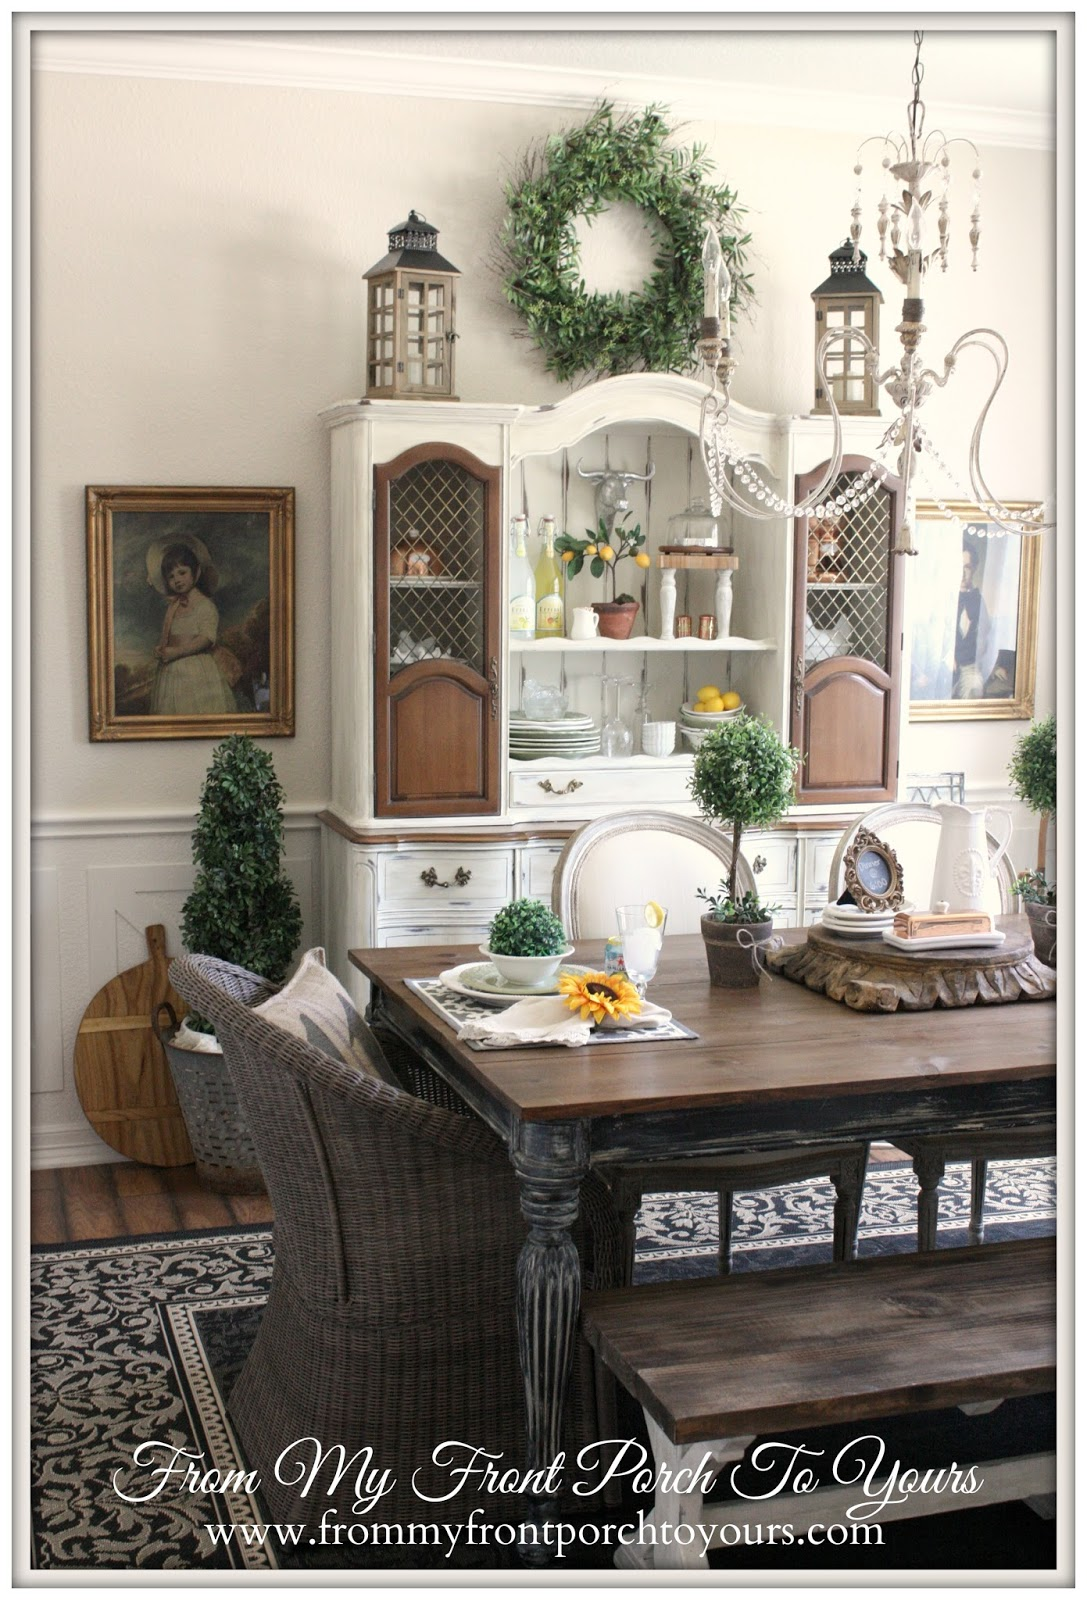 French Farmhouse Dining Room-Top Blog Posts of 2014- From My Front Porch To Yours